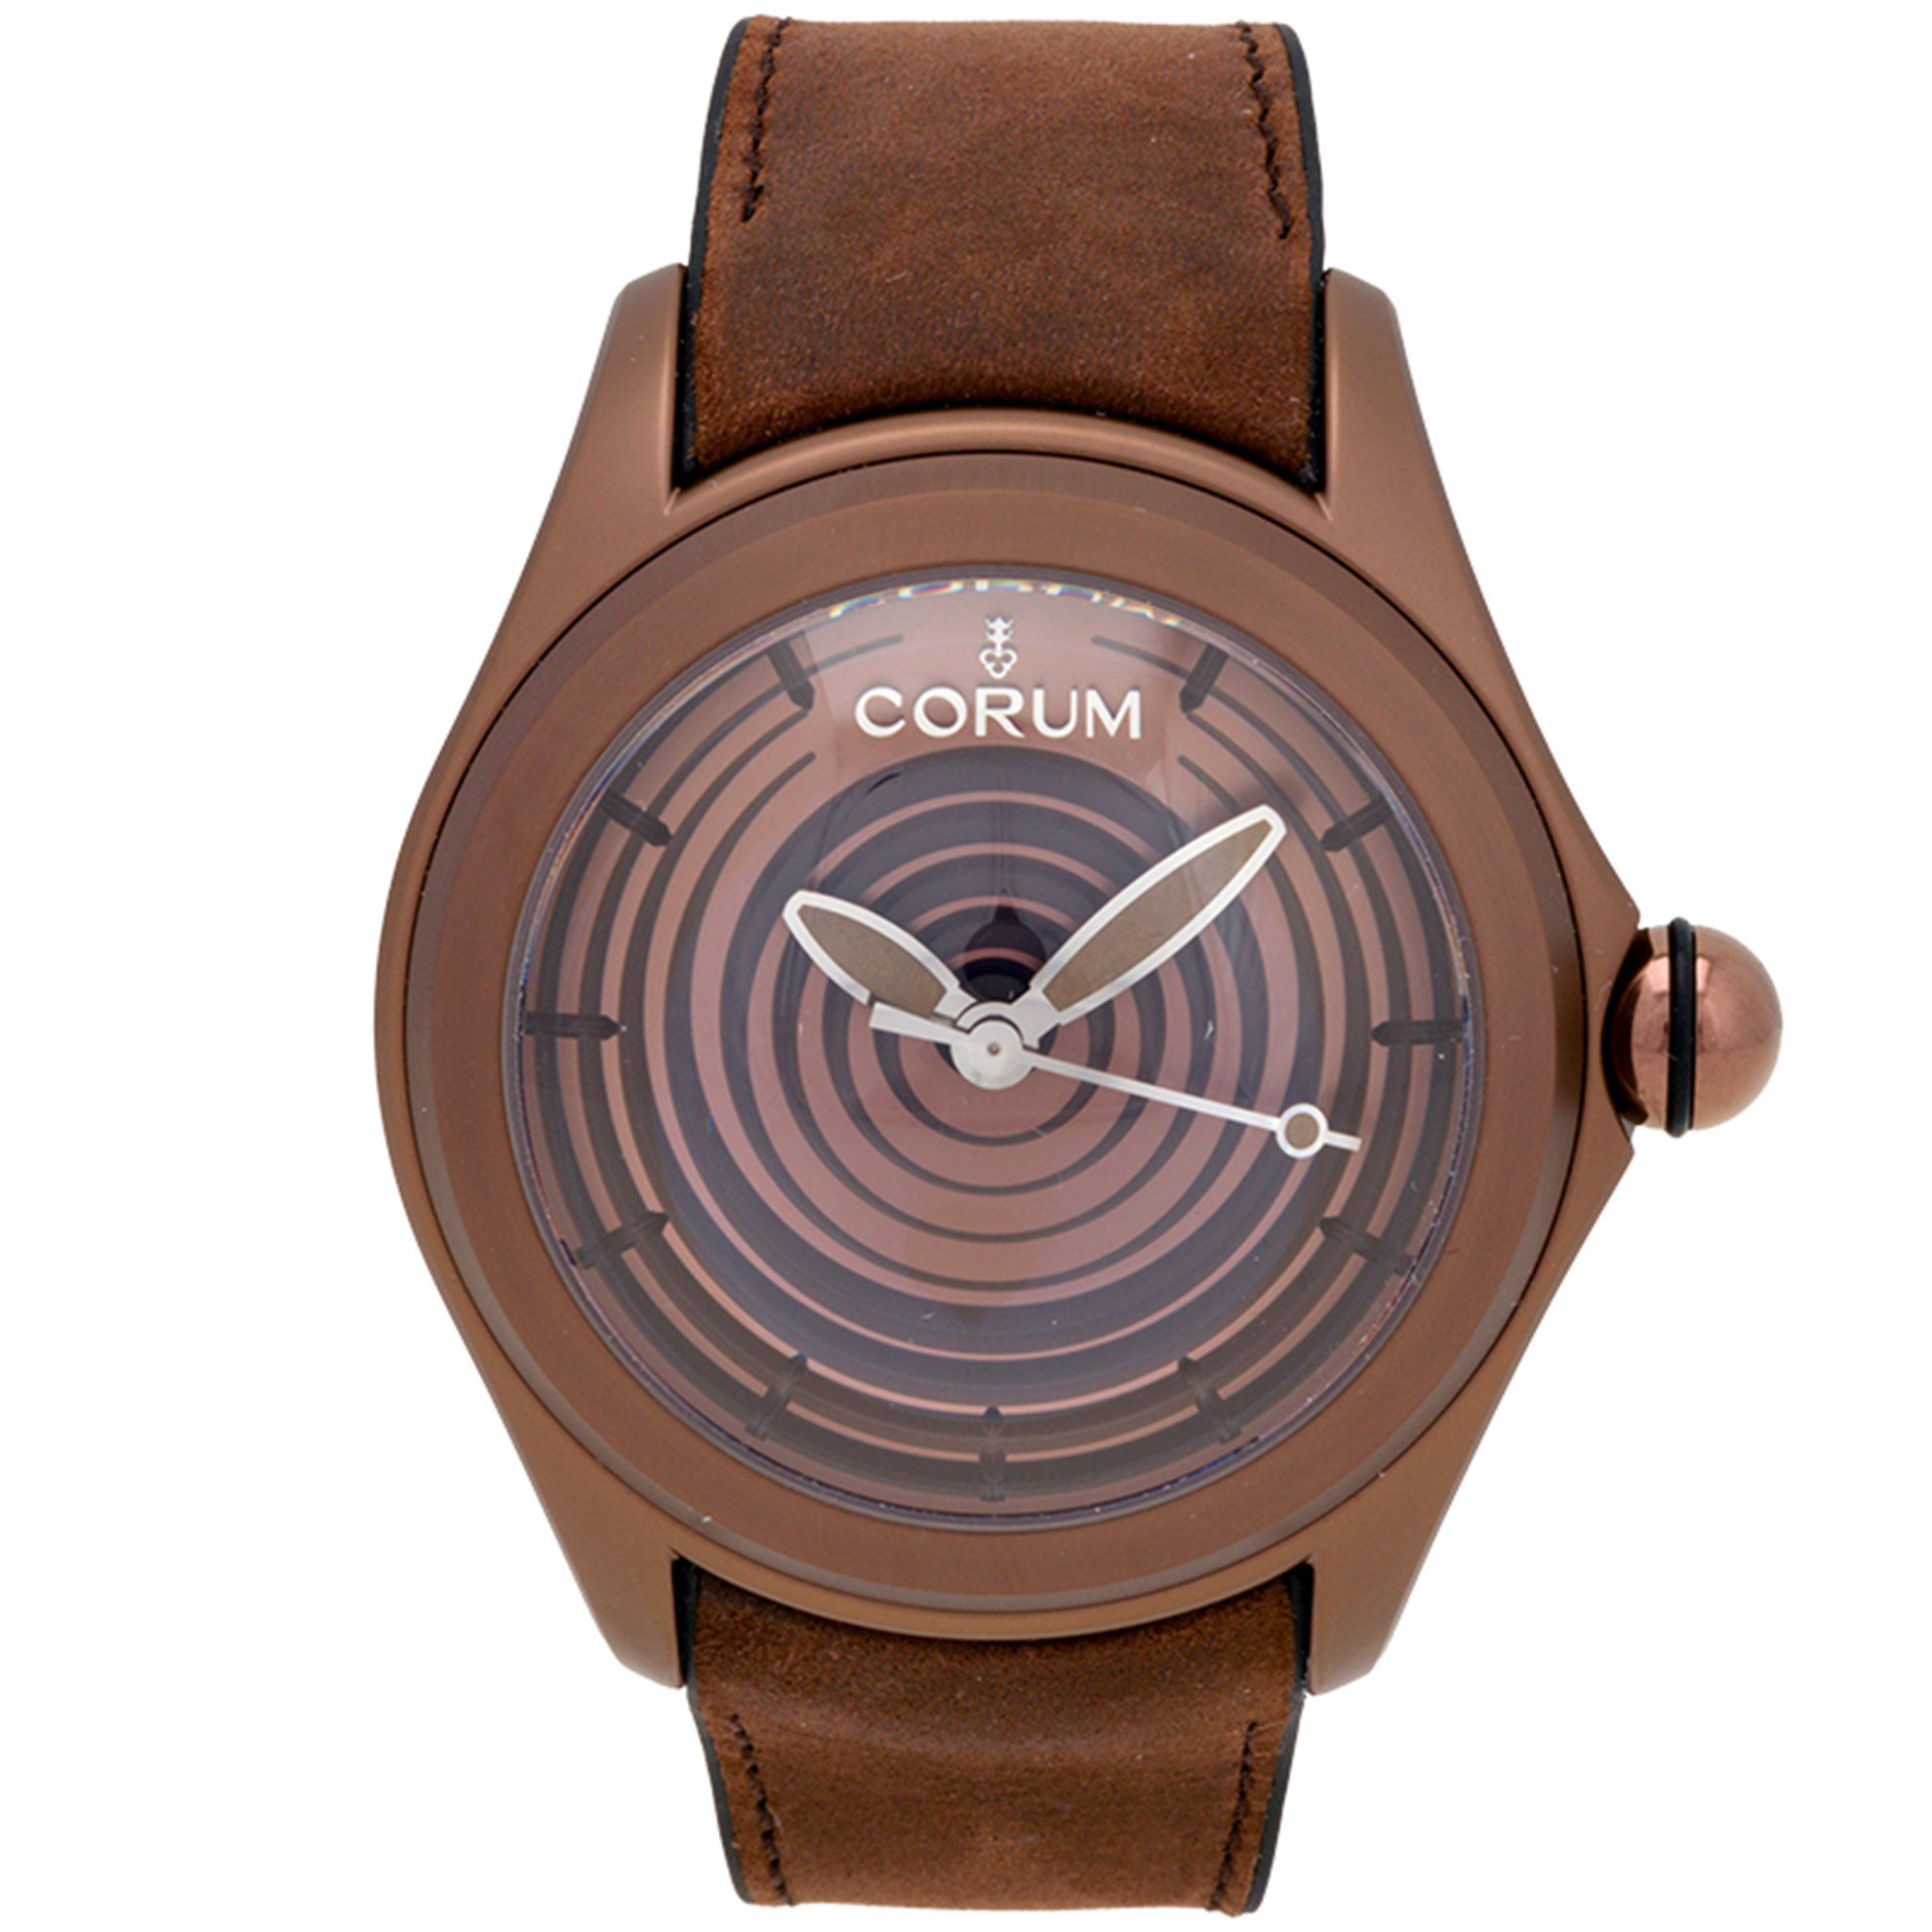 Corum 082.311.98/0062 Corum Bubble Limited Edition Automatic Brown IP Leather Strap